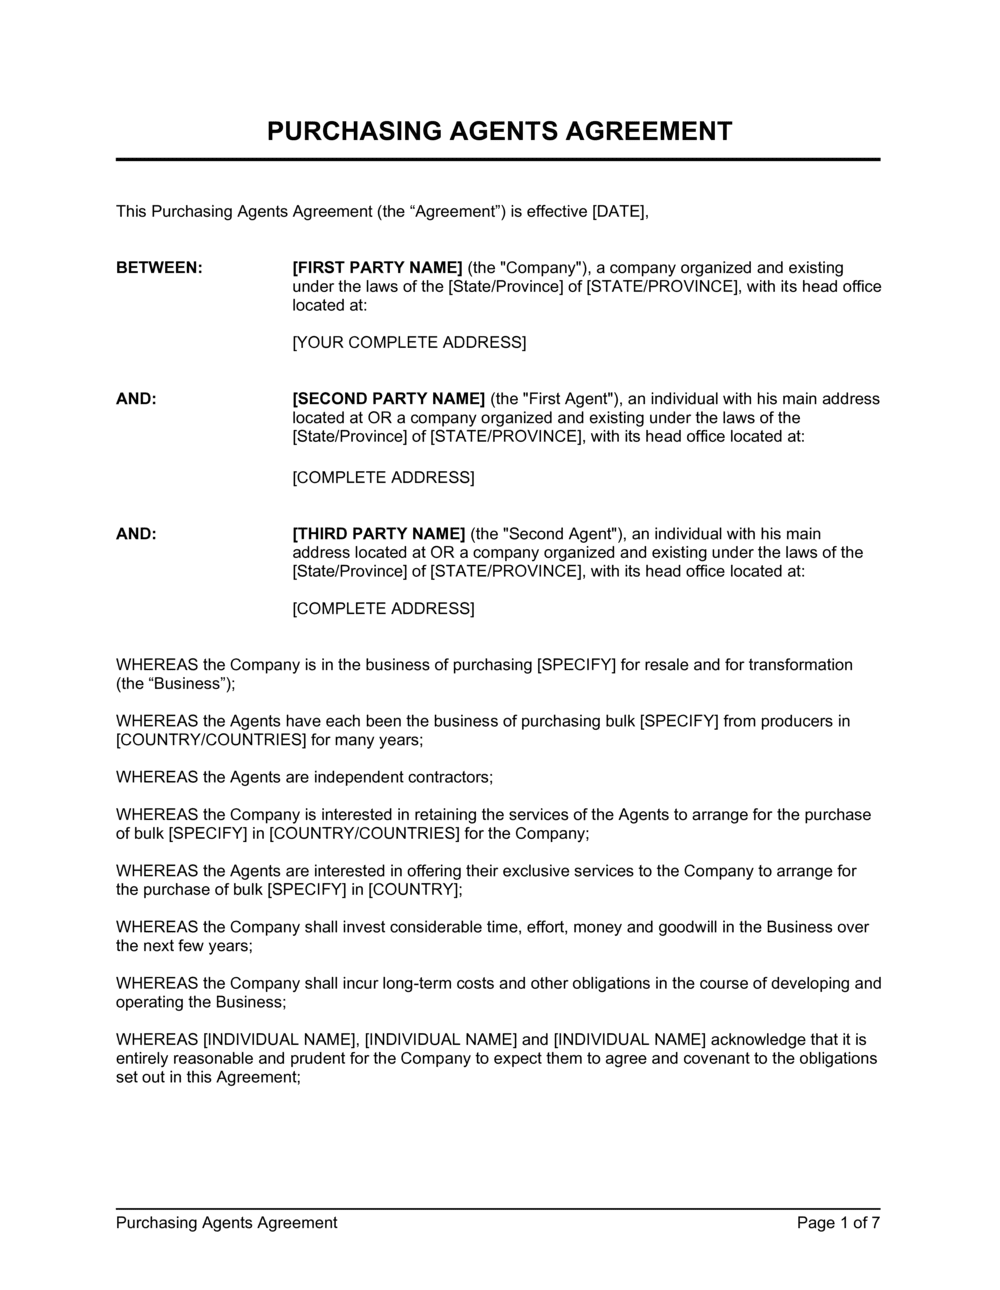 Business-in-a-Box's Purchasing Agents Agreement Template